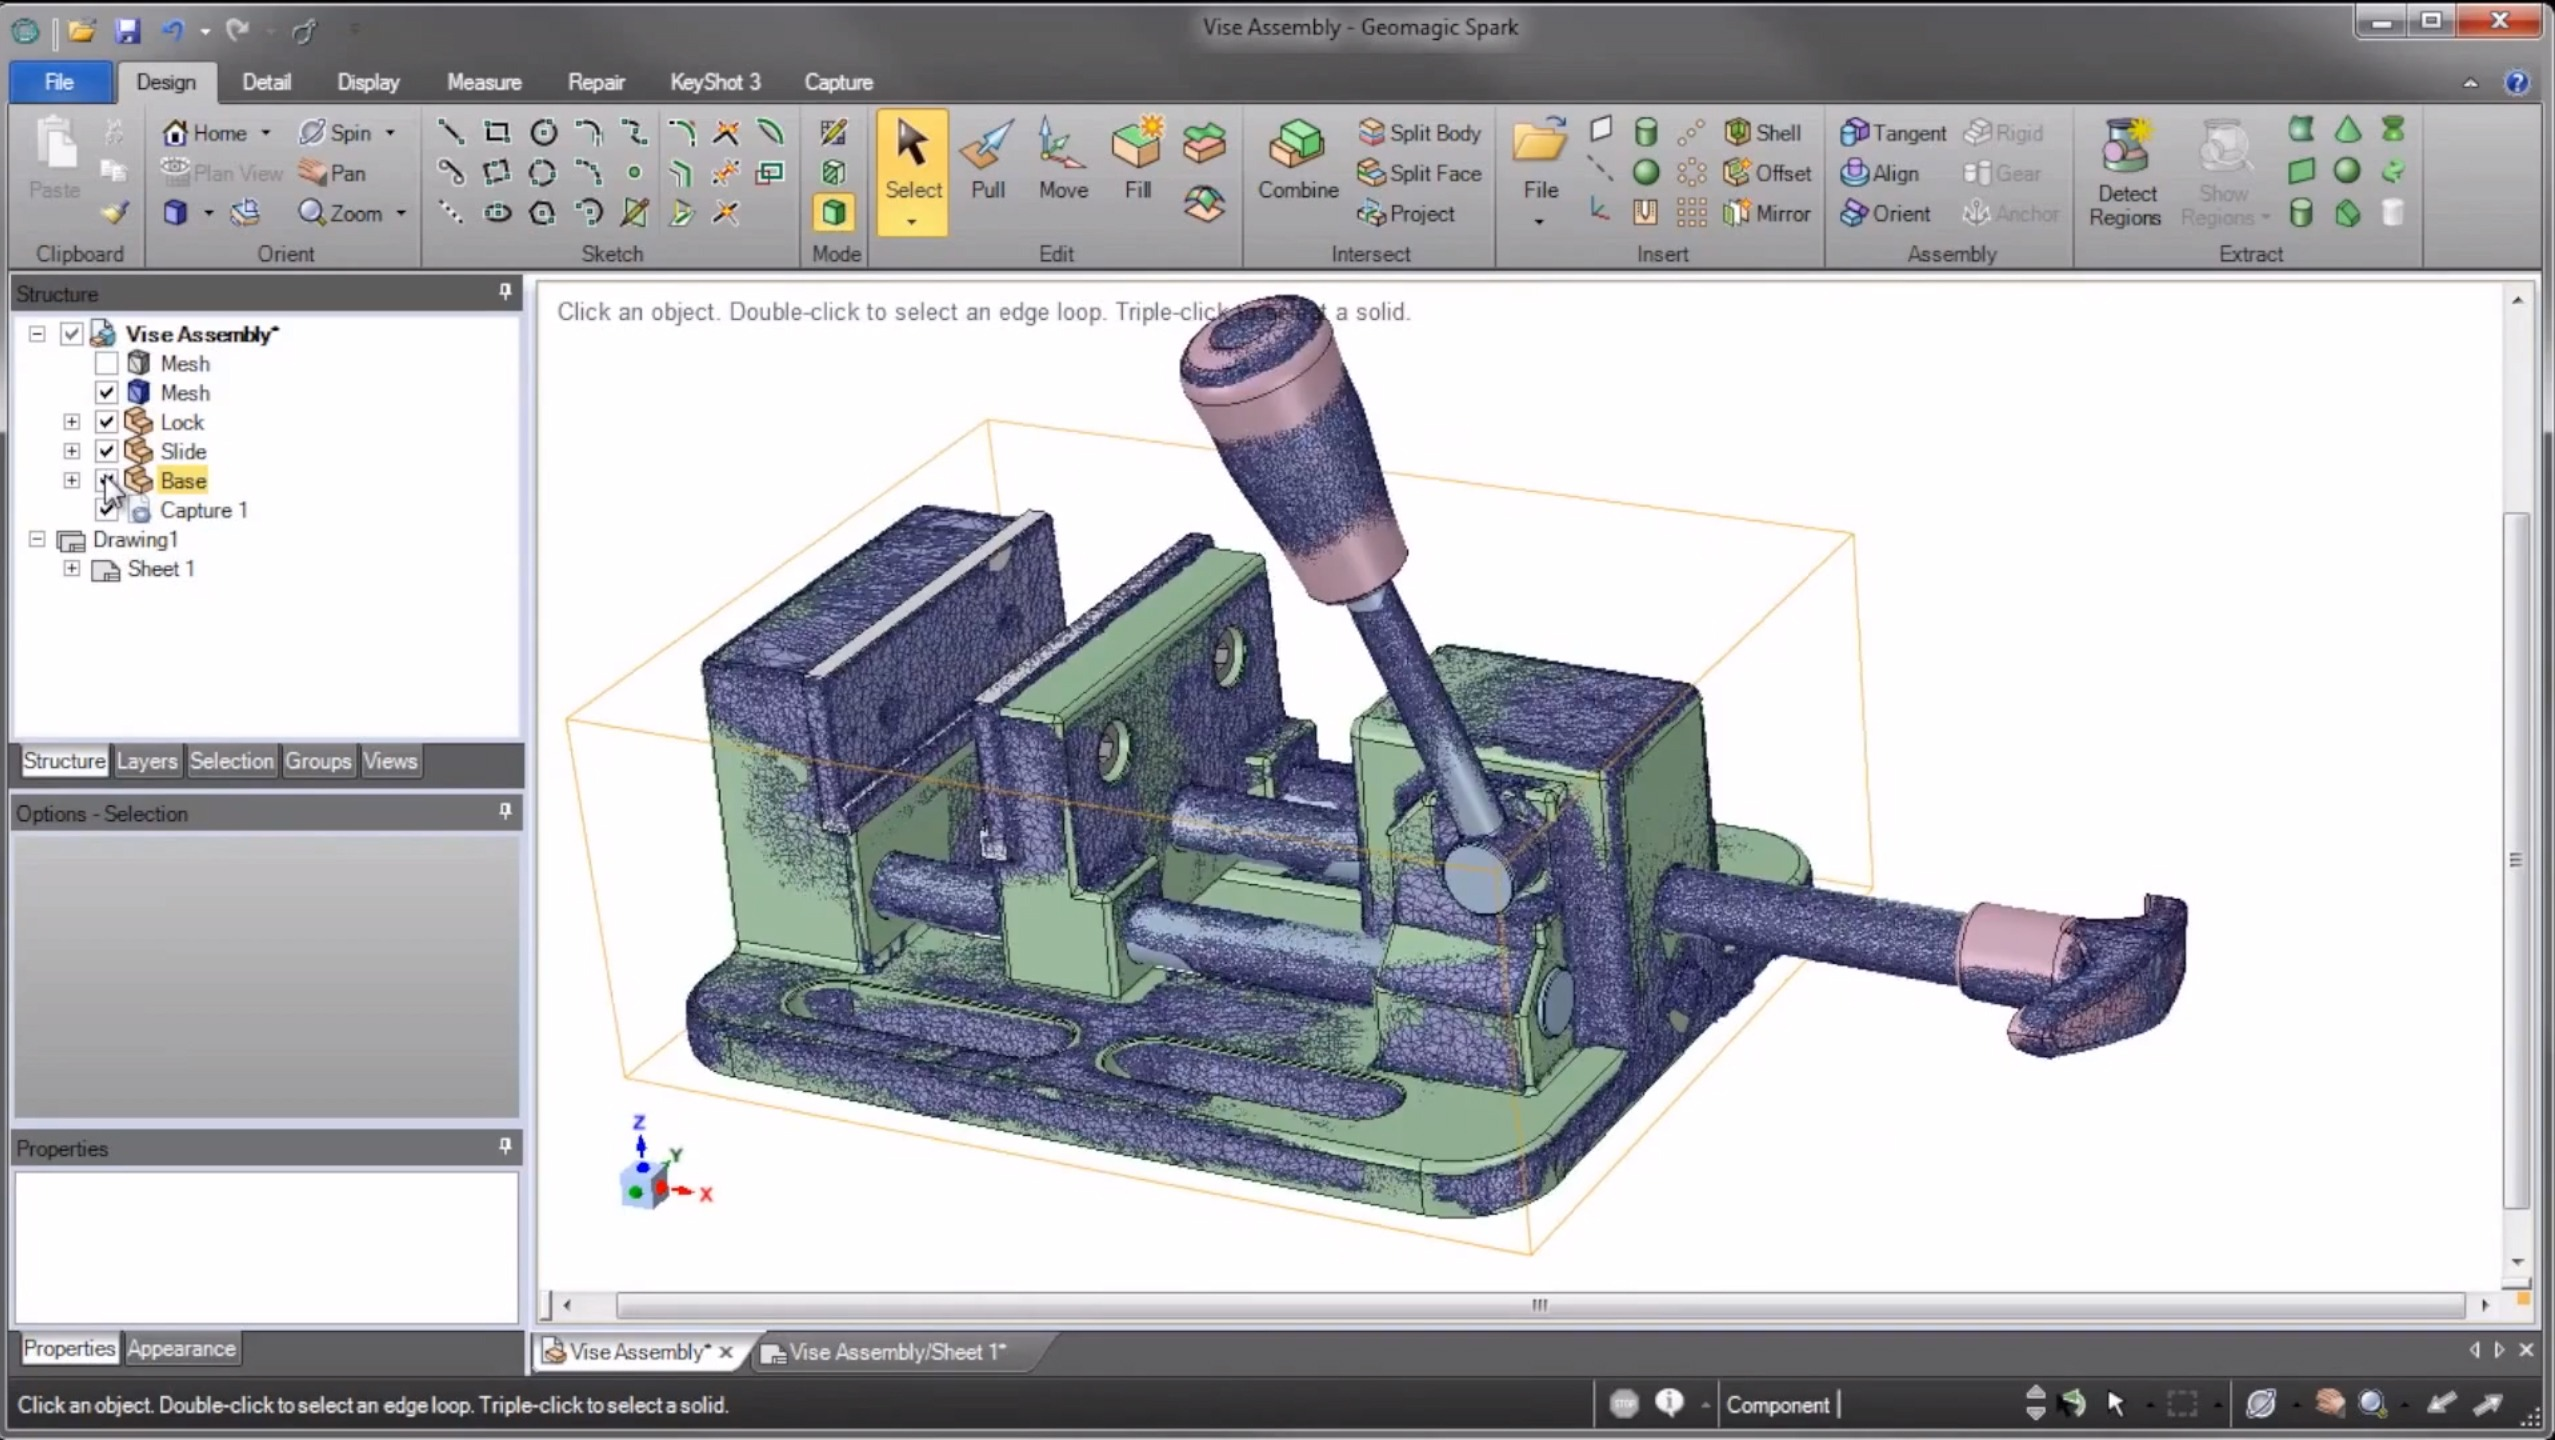 JPM816A further Whitsun Heritage Drive Some Wessex Hillforts Part 22 further Geomagic And Spaceclaim Shake Scan To Cad Scene With Launch Of Geomagic Spark furthermore Victorian Row House Designer Reno On 22 together with 111745634474524212. on patching design